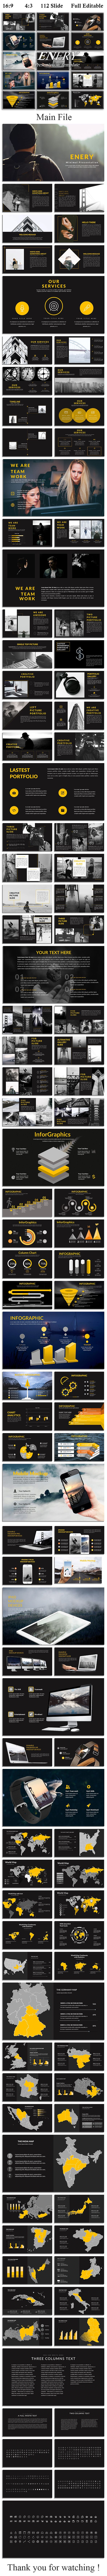 Enery - Creative Google Slide Template | Template, Keynote and ...